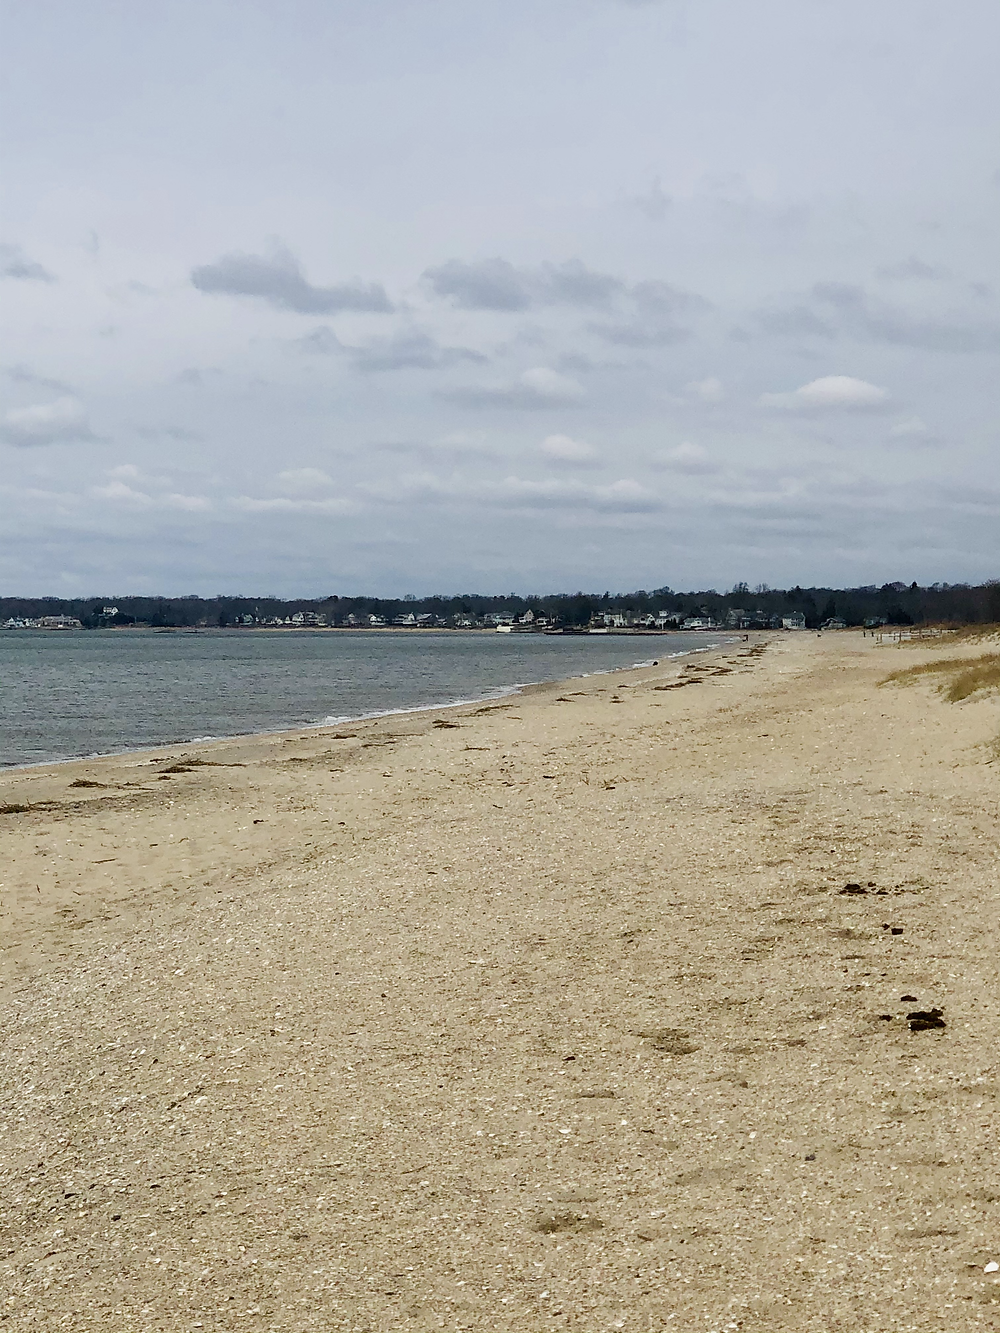 The blue waters and sandy shores of a beach on a cloudy day.